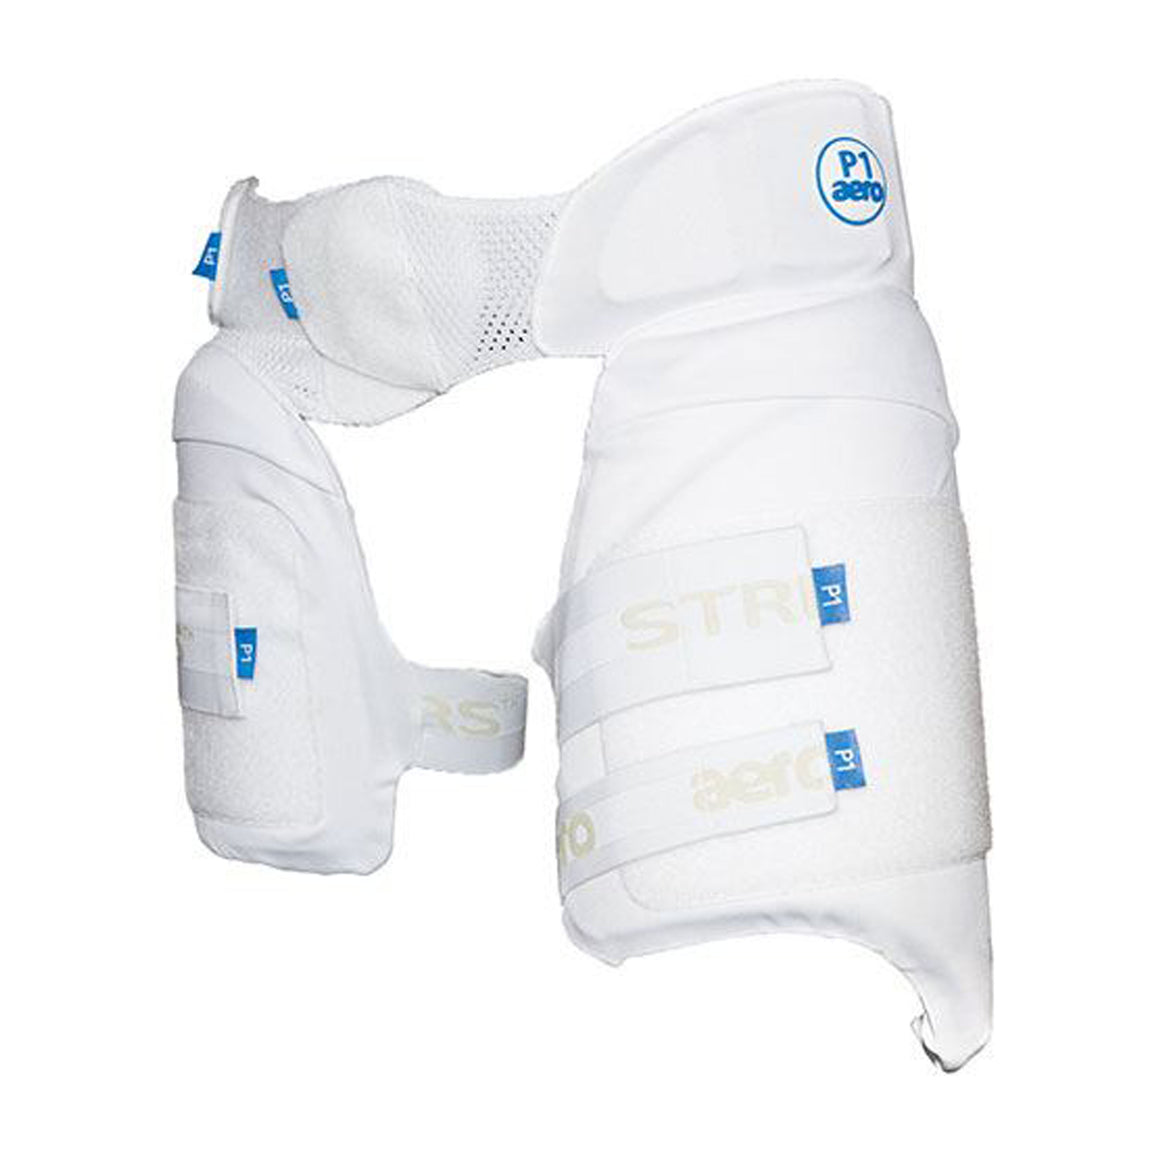 P1 Strippers Cricket Lower Body Protectors R/H in White